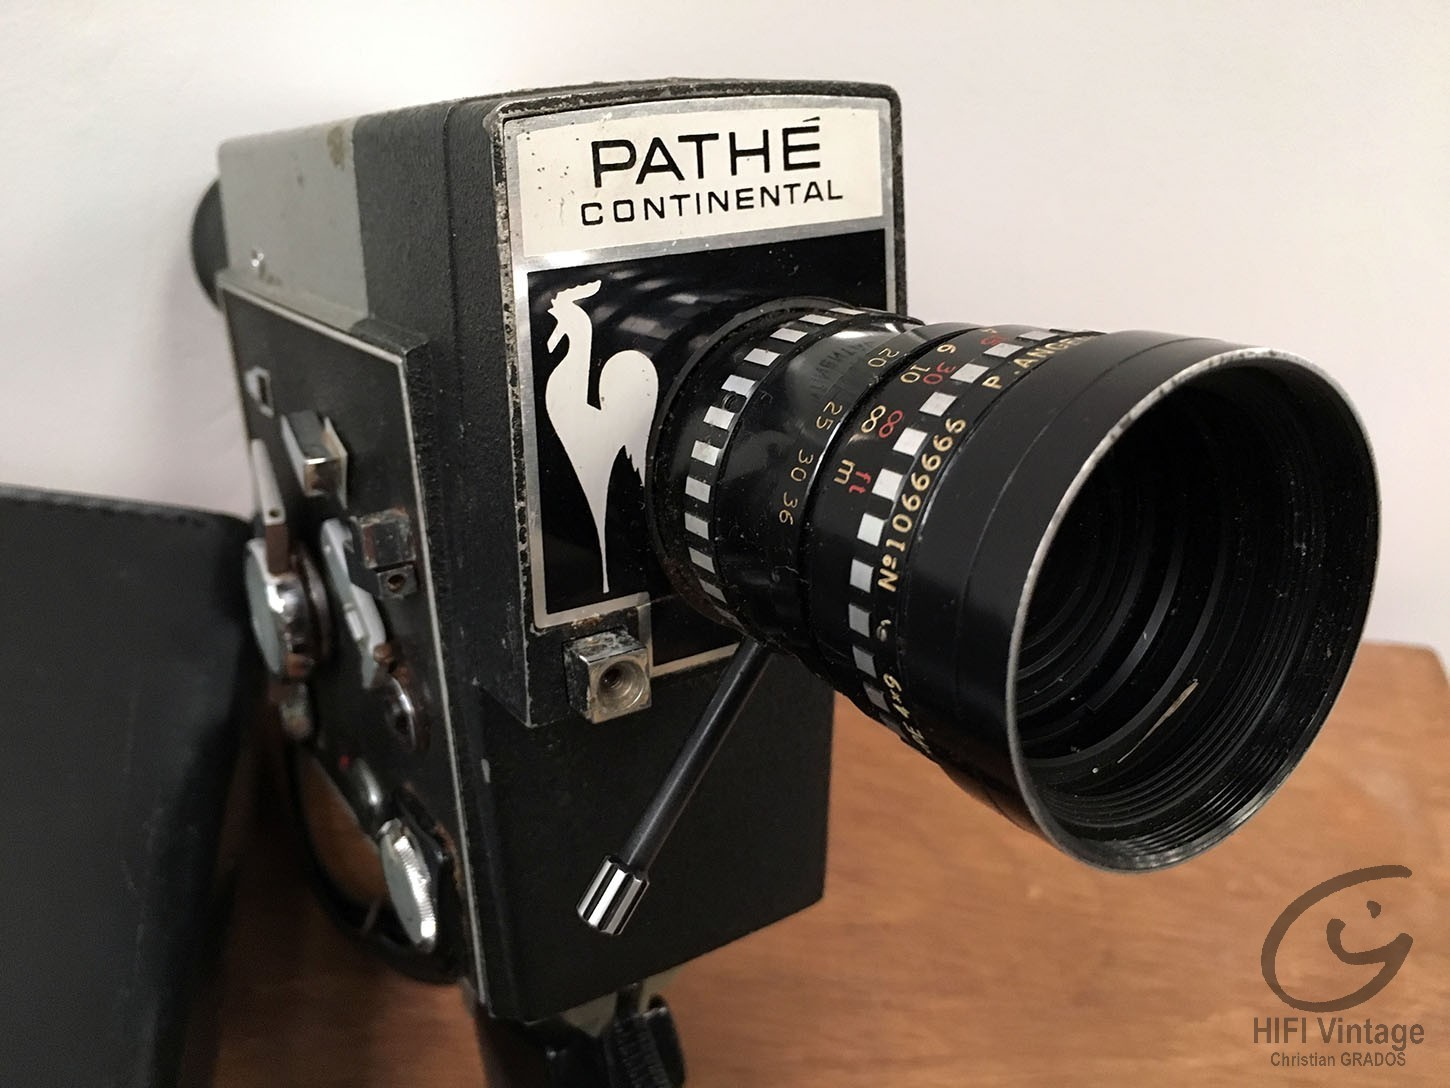 PATHE Continental